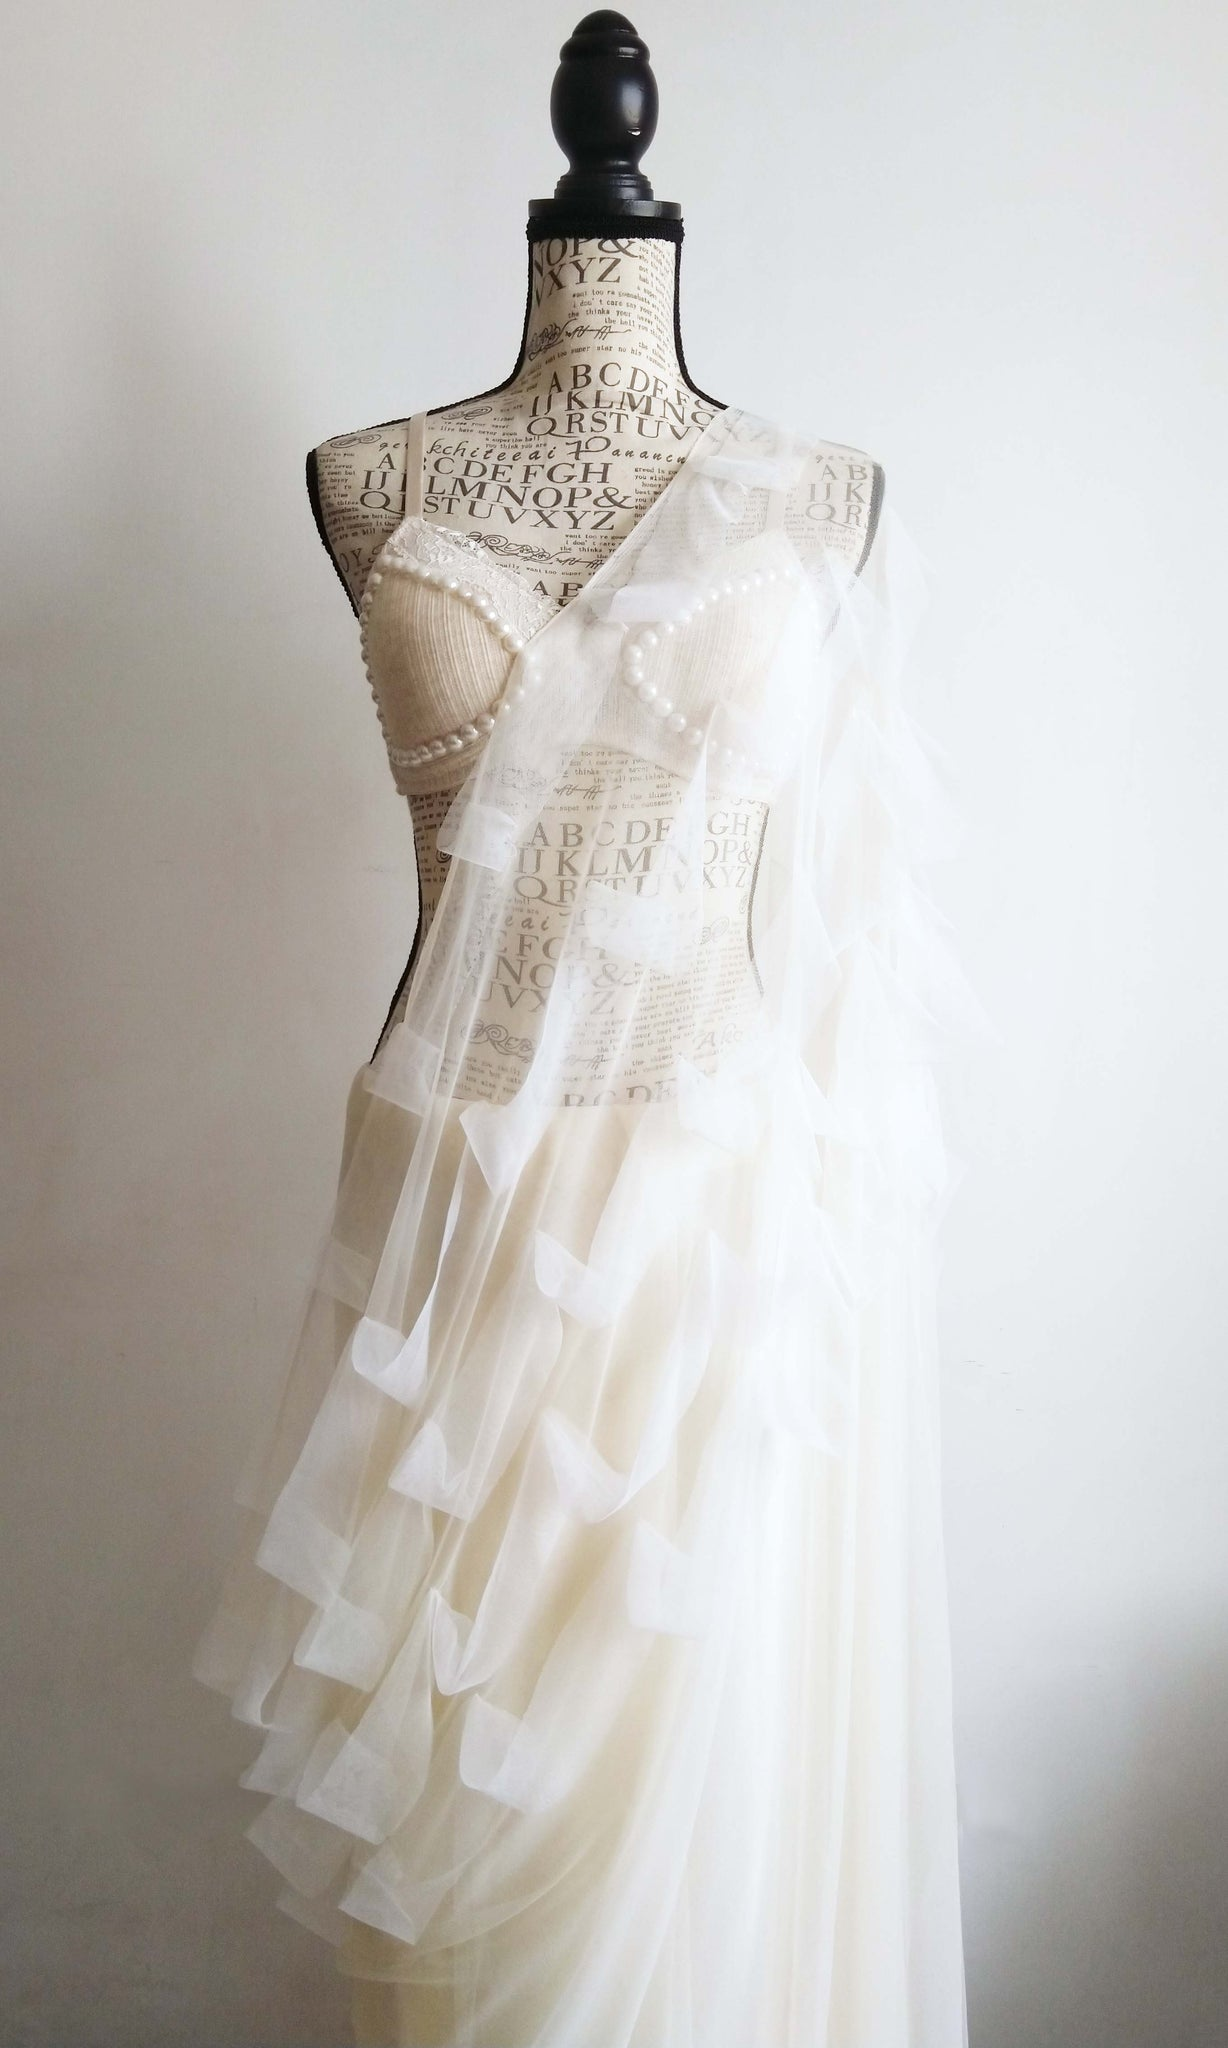 g48 Embryo Sari I Hand Woven & Screen Printed Soft Muslin Cotton-By-Cotton